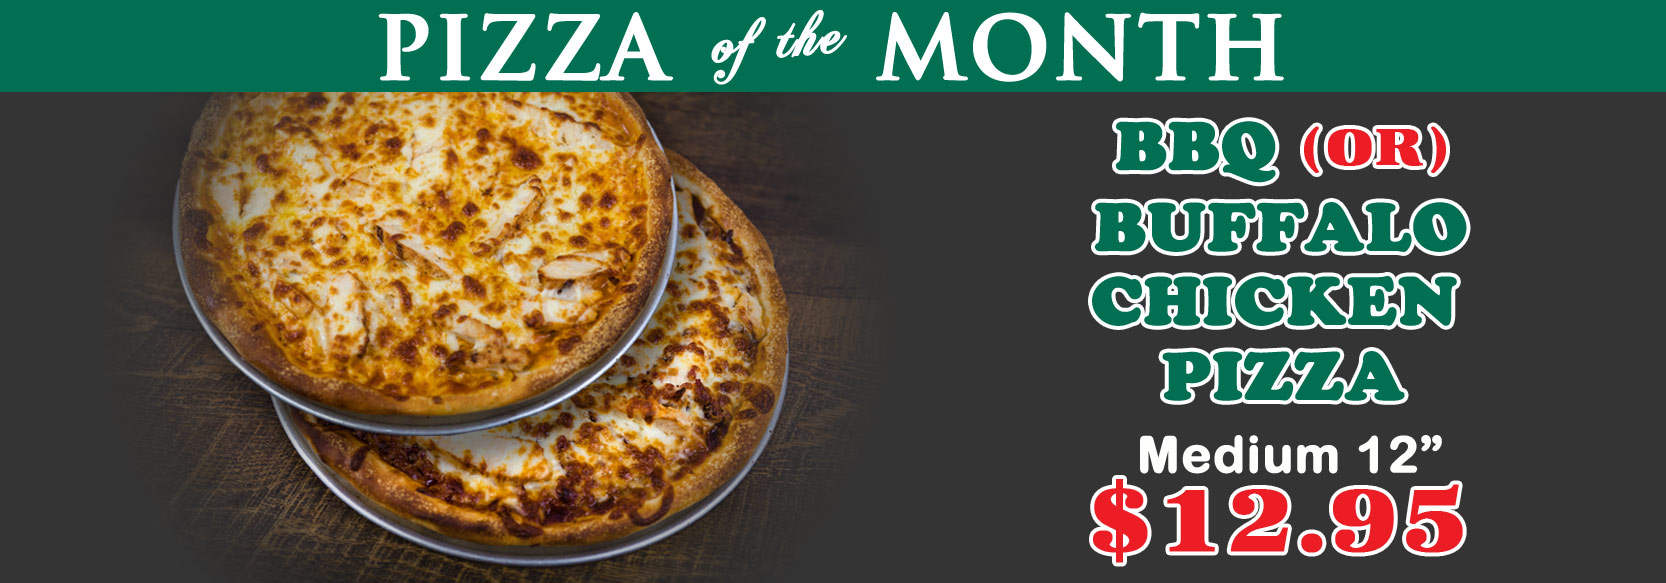 August 2019 Pizza(s) of the Month - BBQ Chicken and Buffalo Chicken Pizza